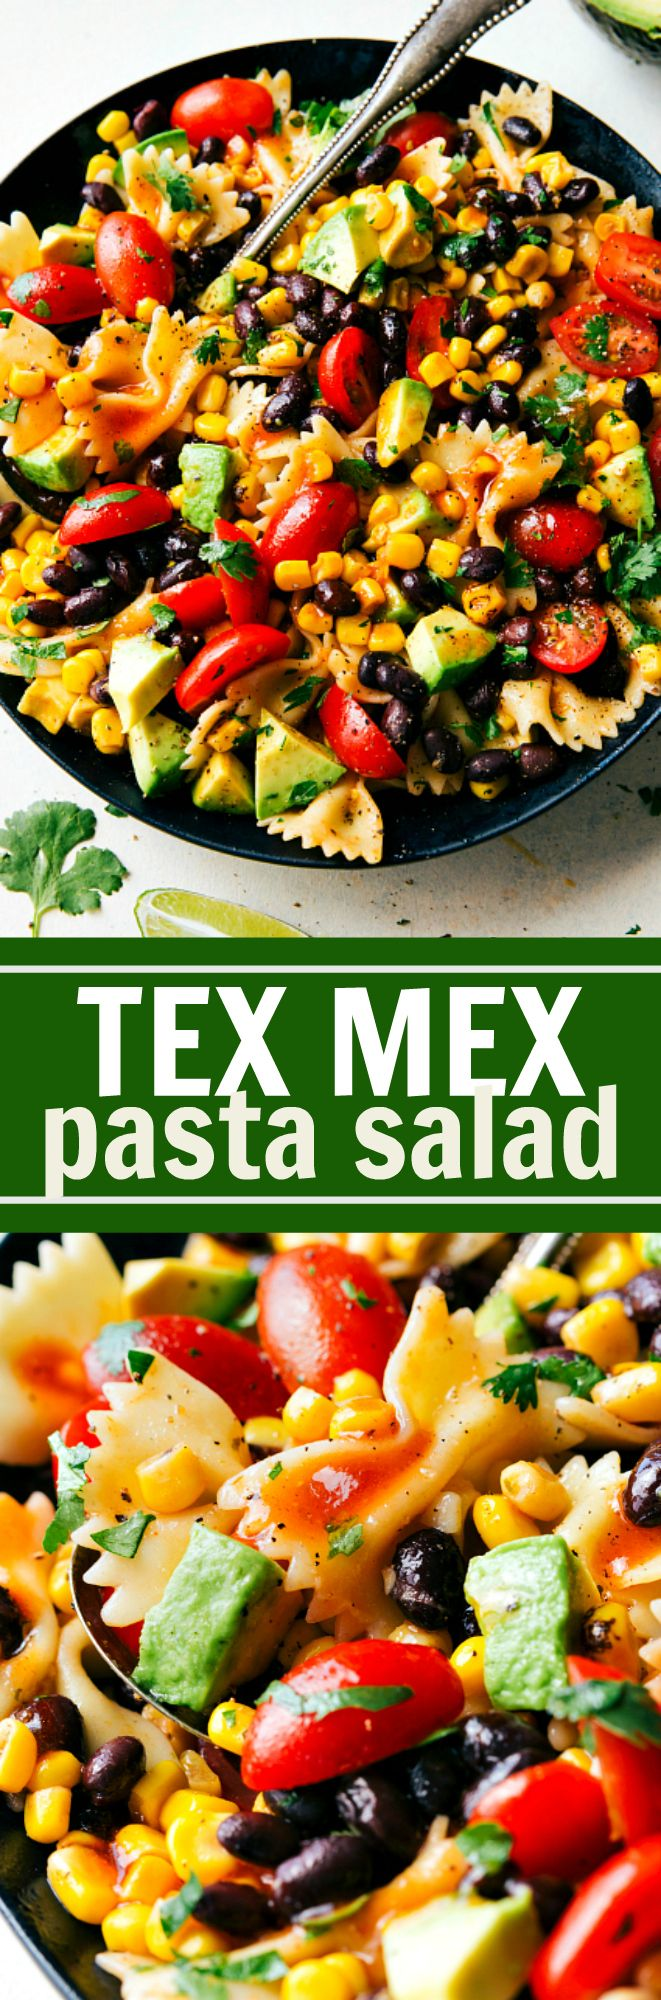 A delicious and super simple Tex Mex Pasta Salad with corn, black beans, cherry tomatoes, and avocados. An easy Catalina dressing tops this salad. Recipe via chelseasmessyapron.com